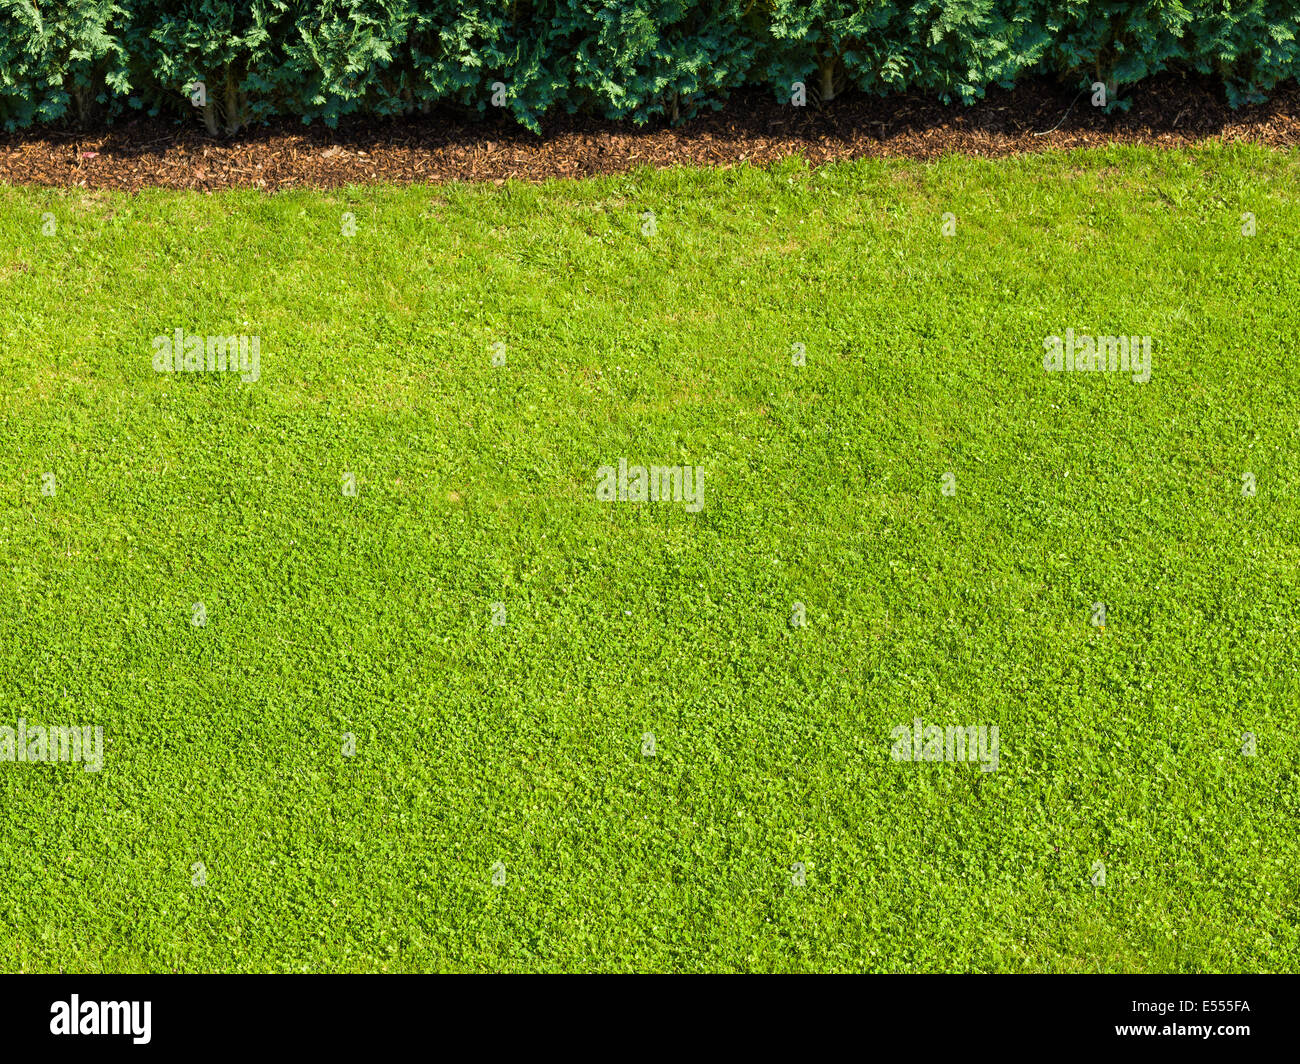 green lawn green grass garden nice bright good well trained perfect green fee golf bio organic rich - Stock Image